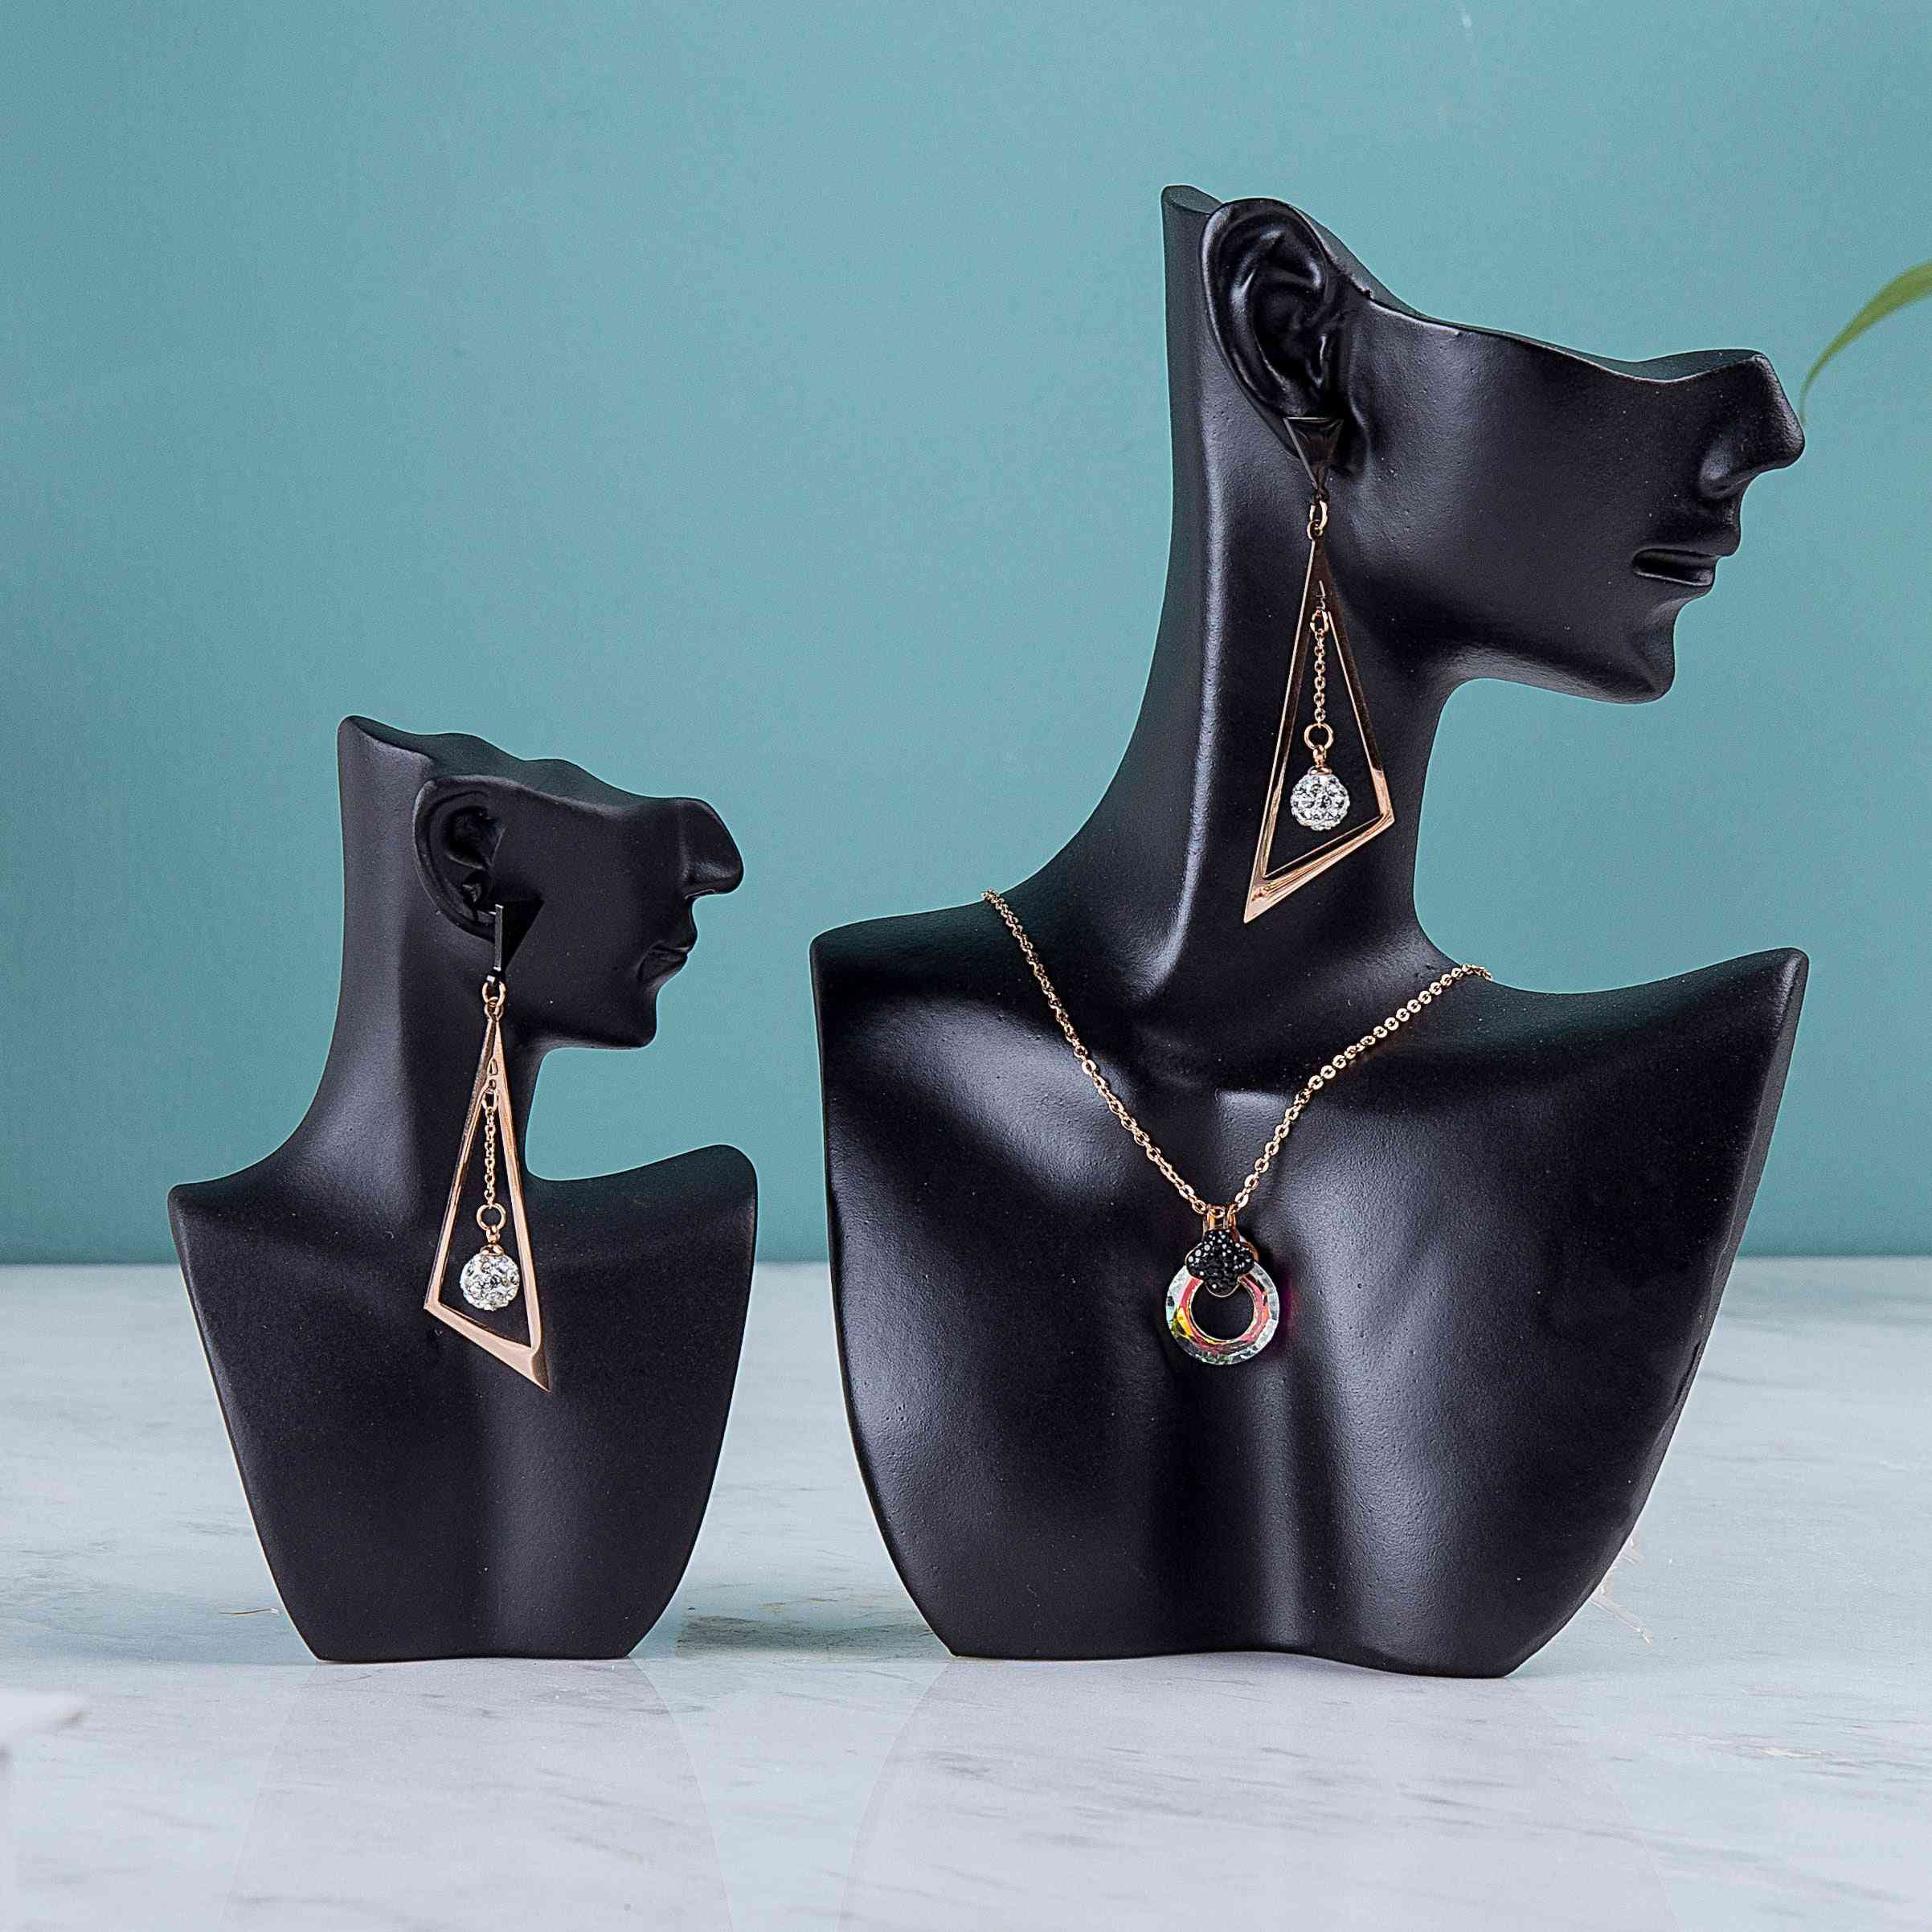 Model Earrings Necklace Jewelry Display Stand